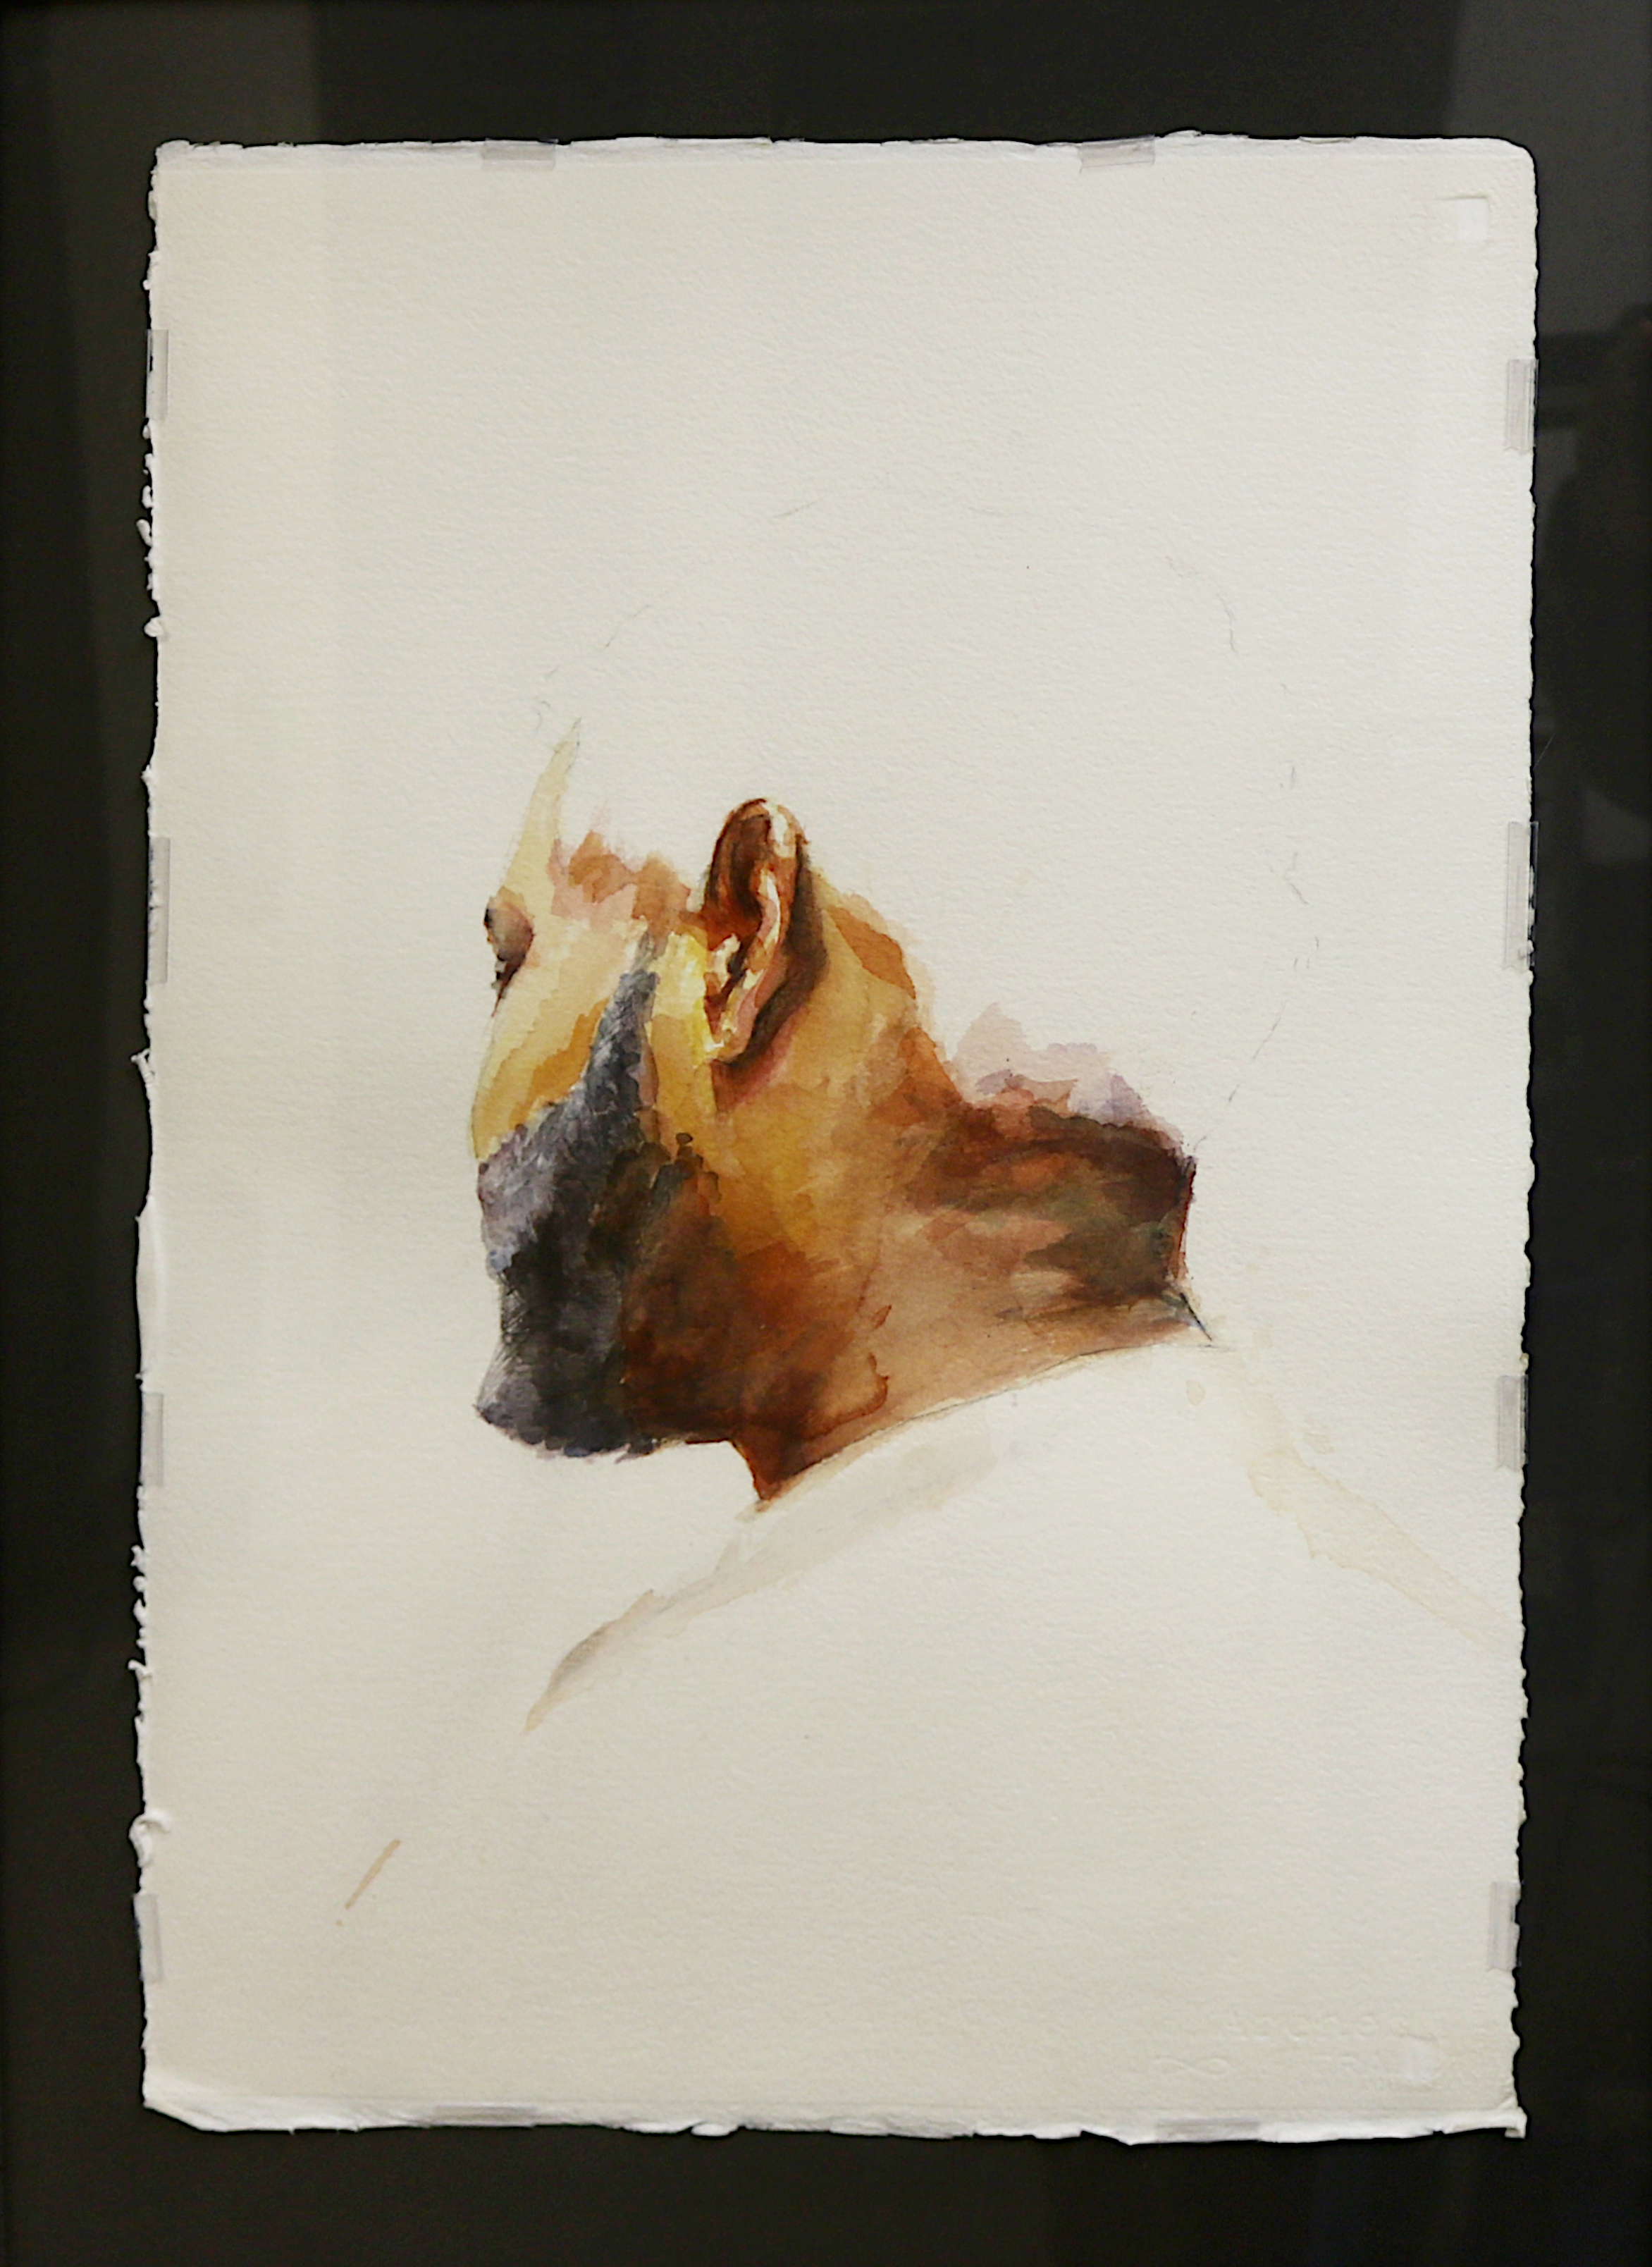 Justin Bryant   Untitled #12 (Man with White Hair #2)   Watercolor